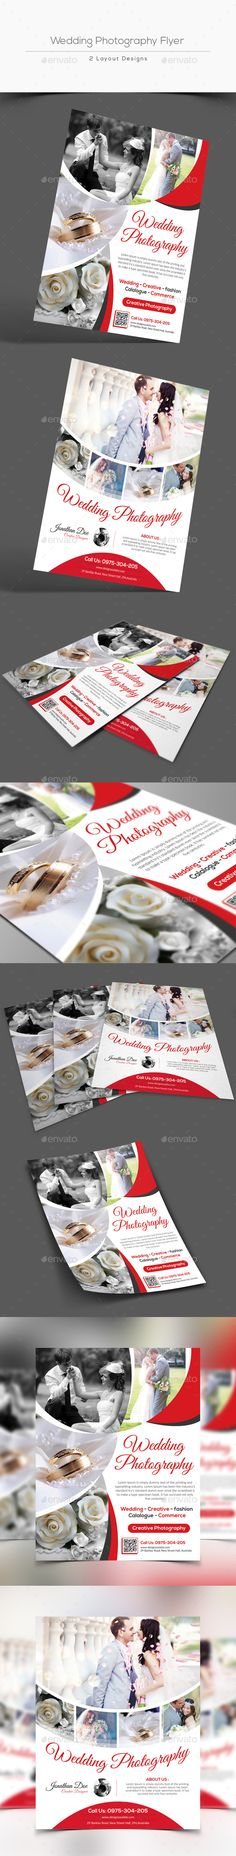 Wedding Photography Flyer — Photoshop PSD #studio #photographer • Available here → https://graphicriver.net/item/wedding-photography-flyer/13433835?ref=pxcr